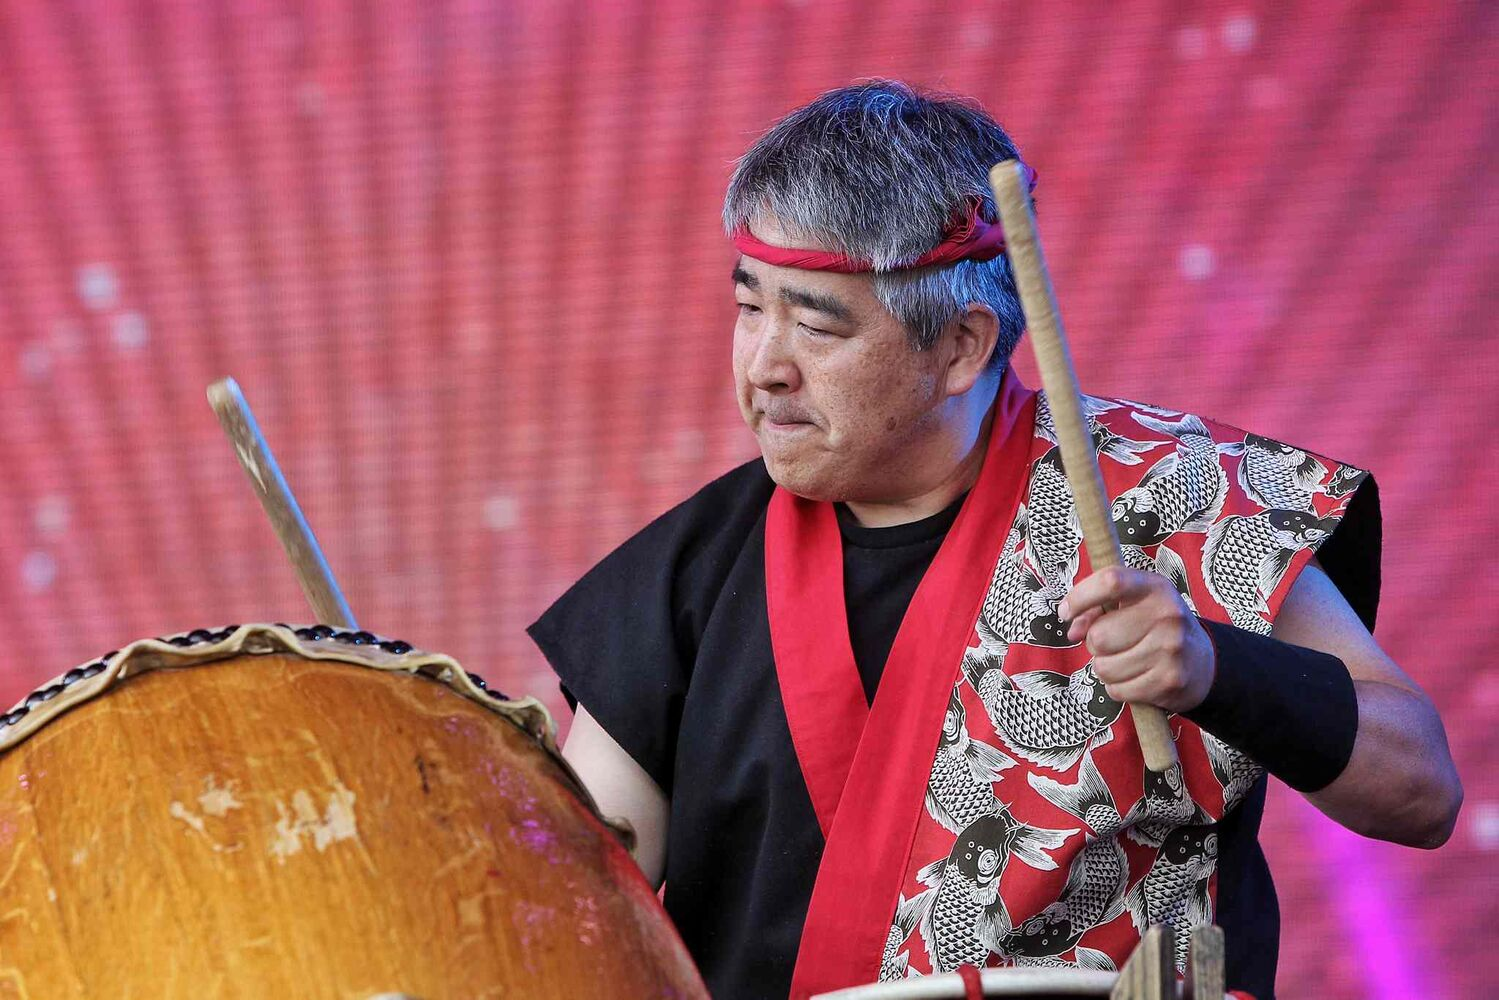 A member of Drums United perform on the Festival Stage at The Forks during the United Way 50th Anniversary concert, One Night For Winnipeg. (Mike Deal / Winnipeg Free Press)